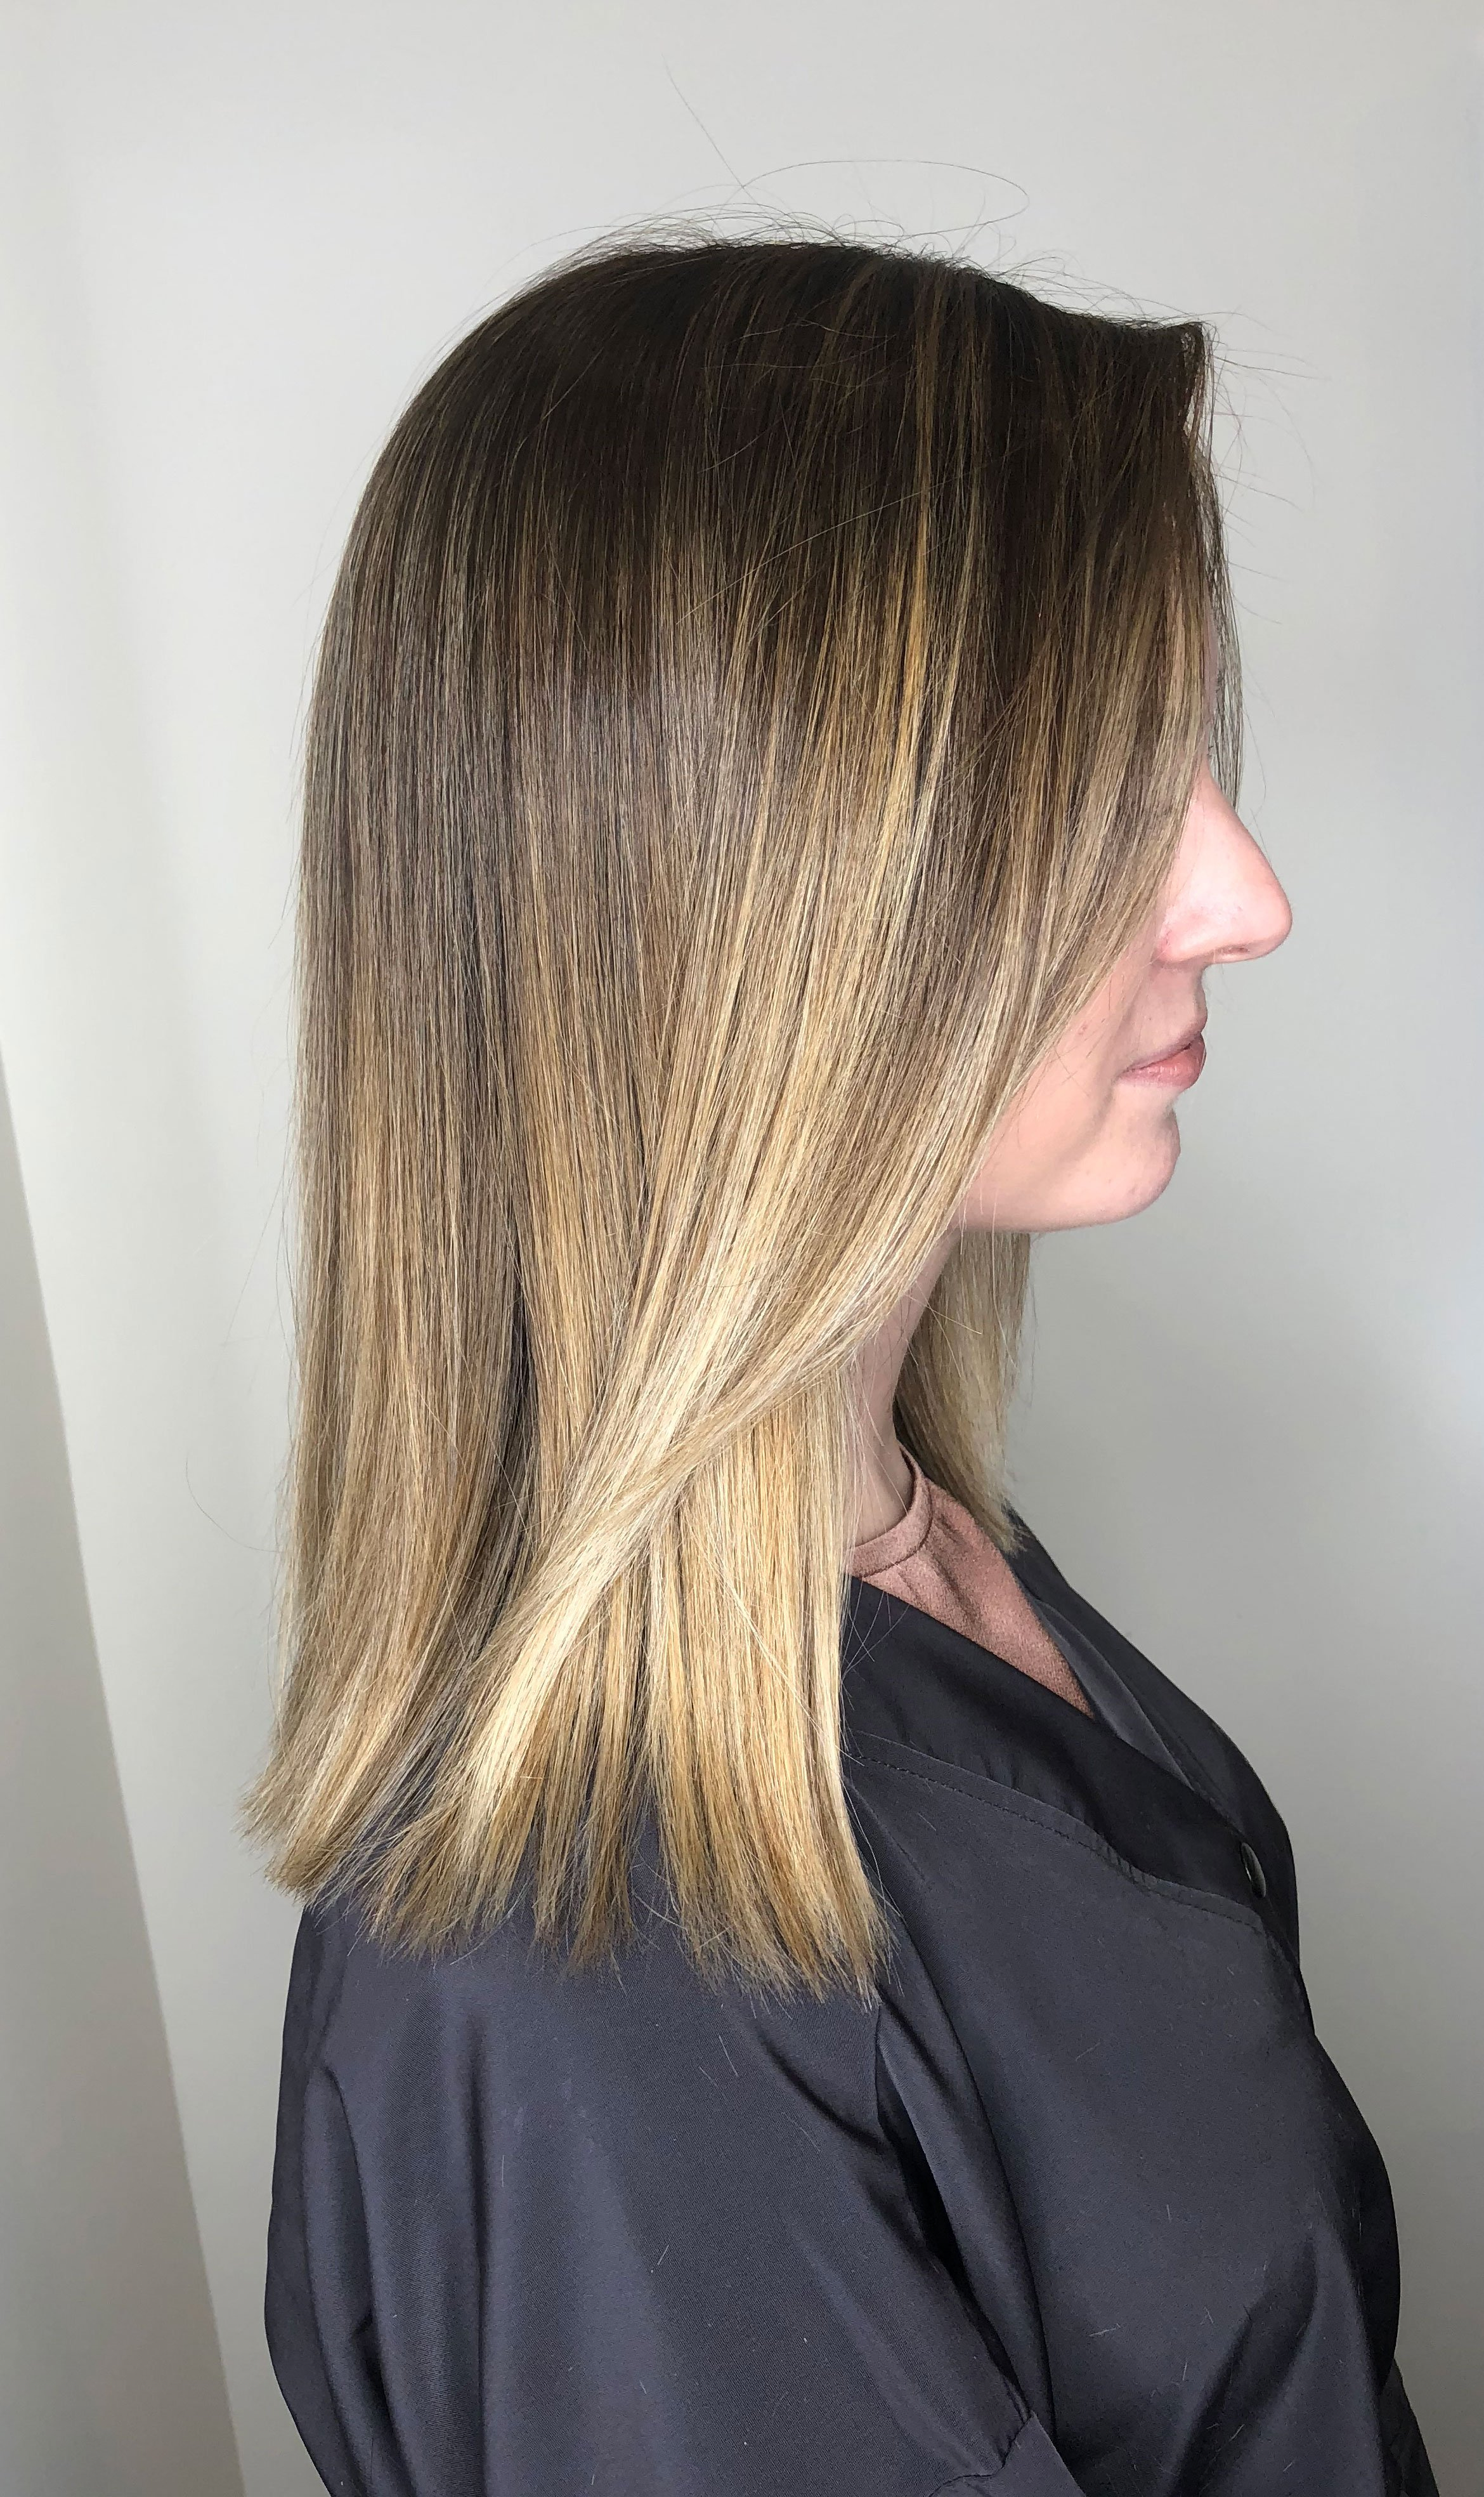 HOW-TO: Low Maintenance Highlights with Major Impact